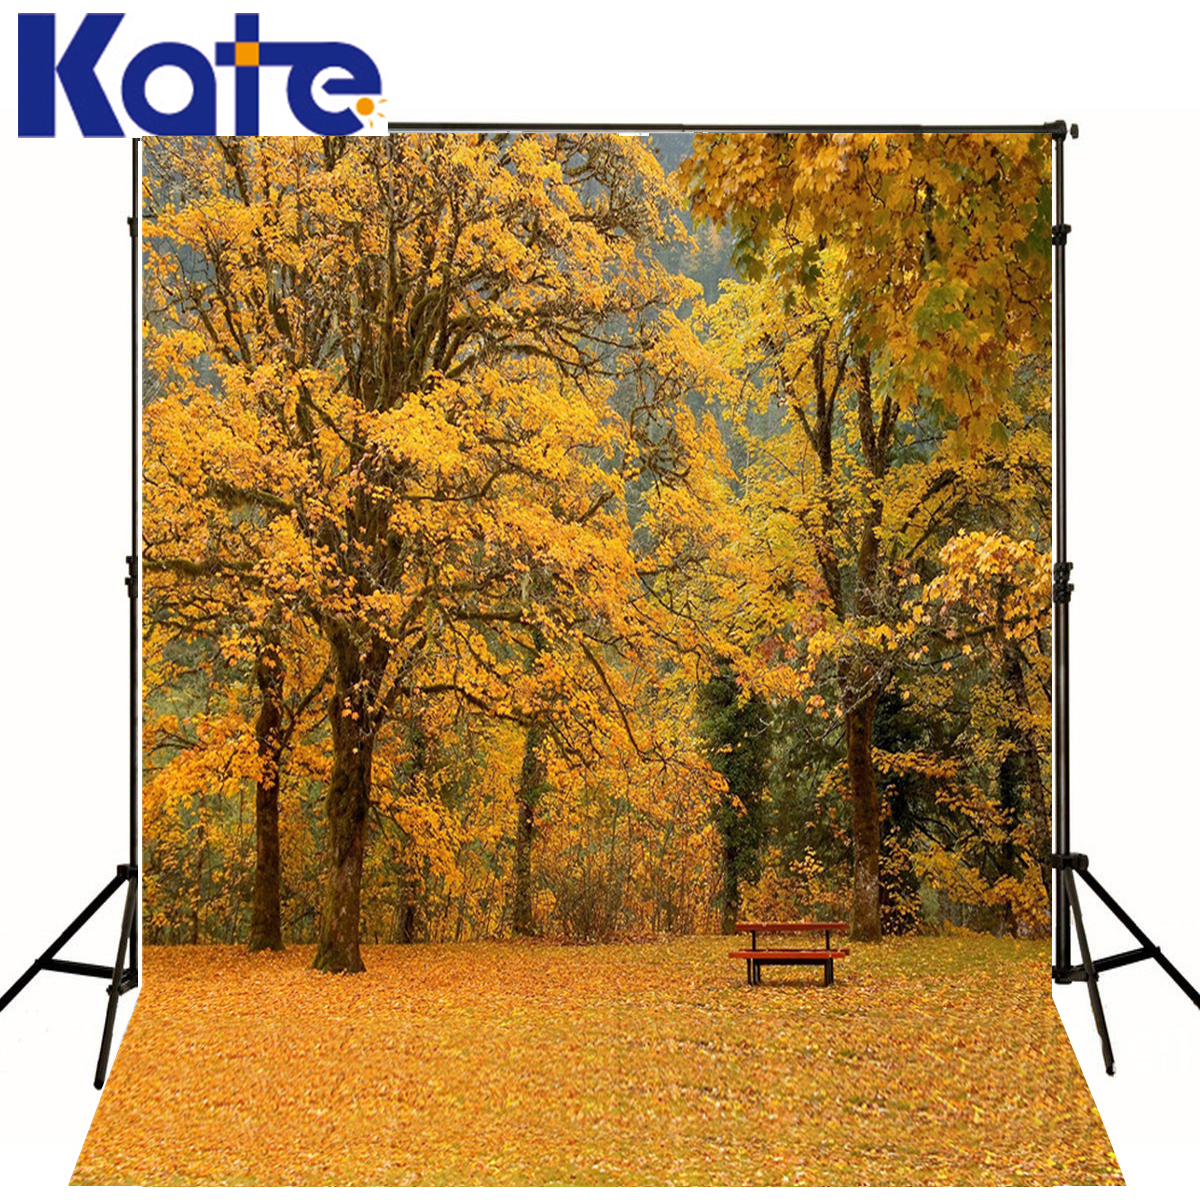 KATE Photo Background 5x7ft Yellow Leaf Chair Backdrop Children Scenery Backdrops Trees Sky Background for Photo Shoot Studio kate photo background scenery